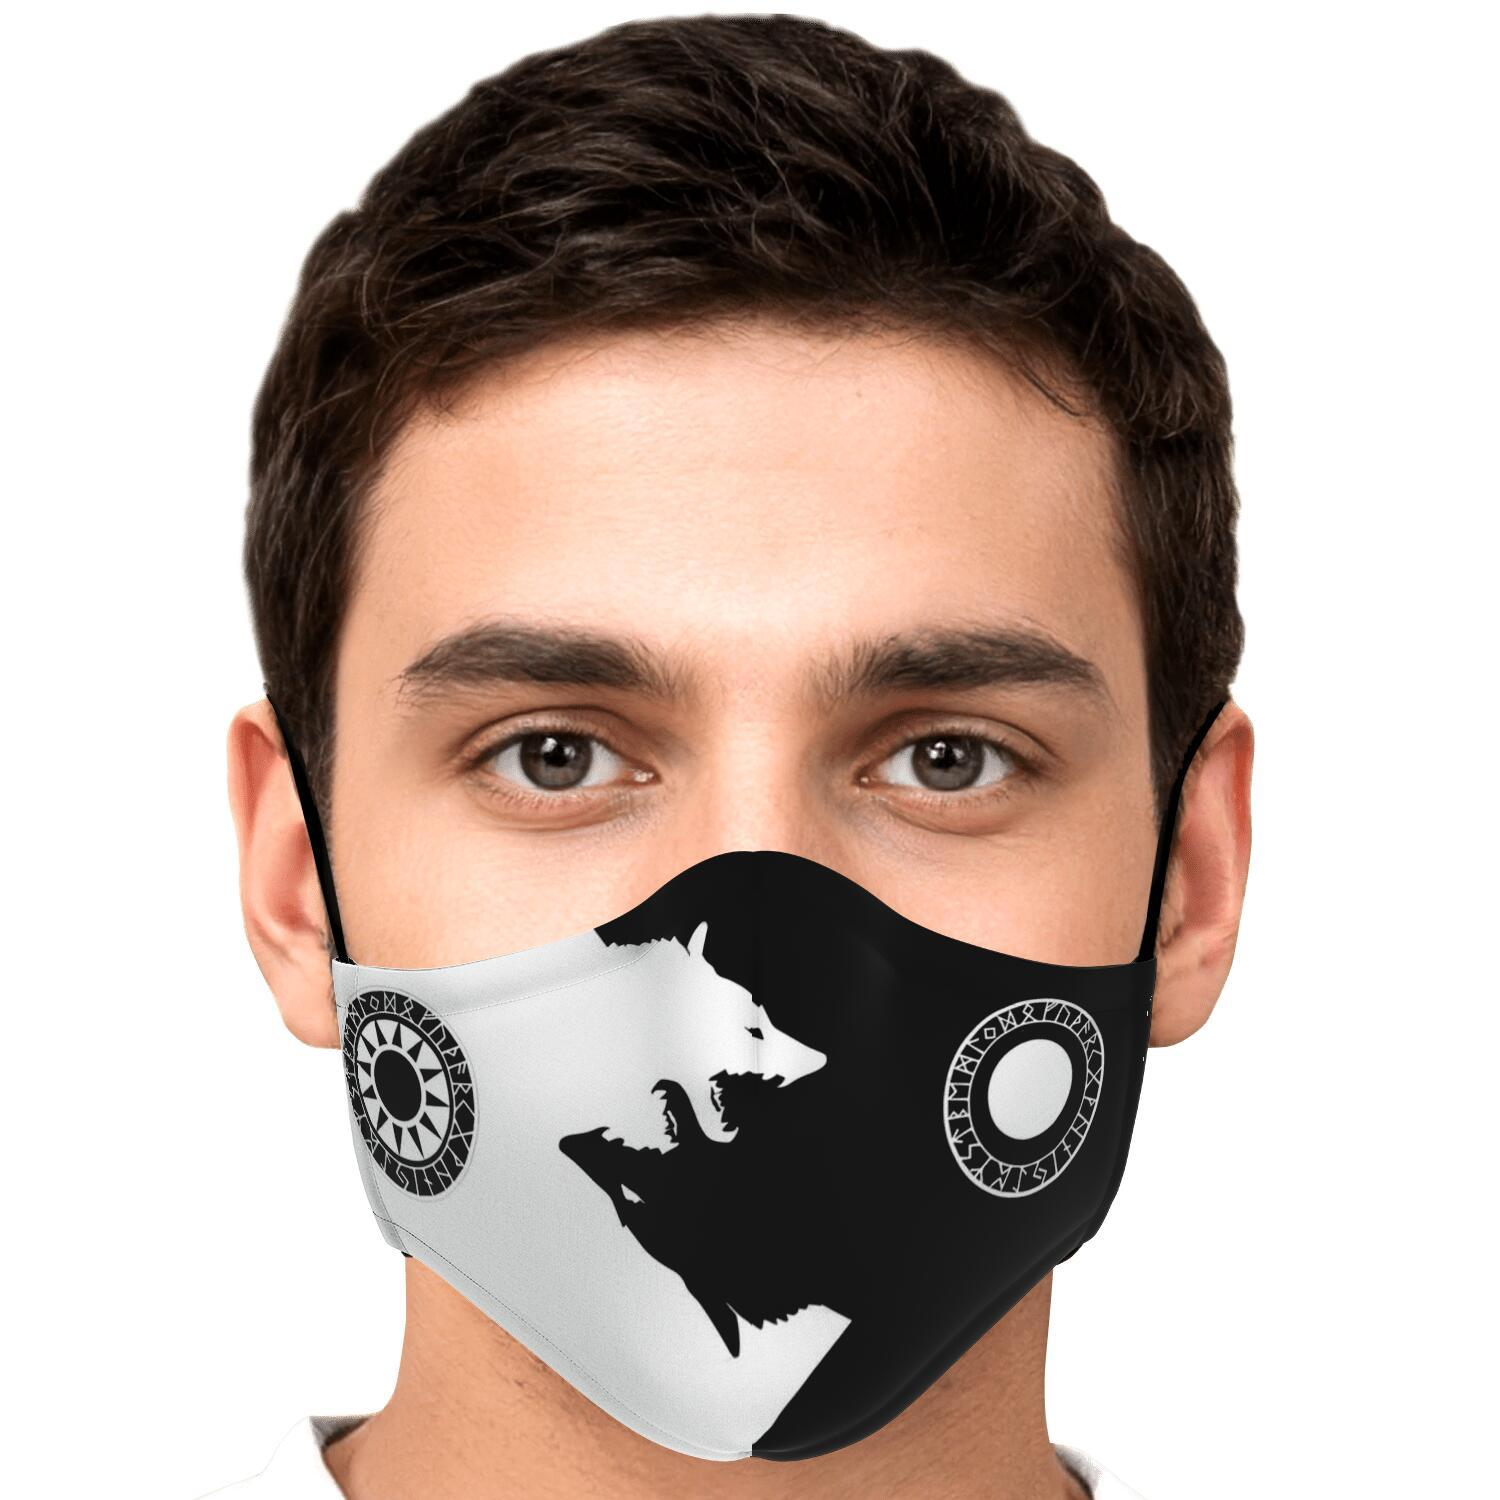 Sköll & Hati Viking Black & White Face Mask Cover